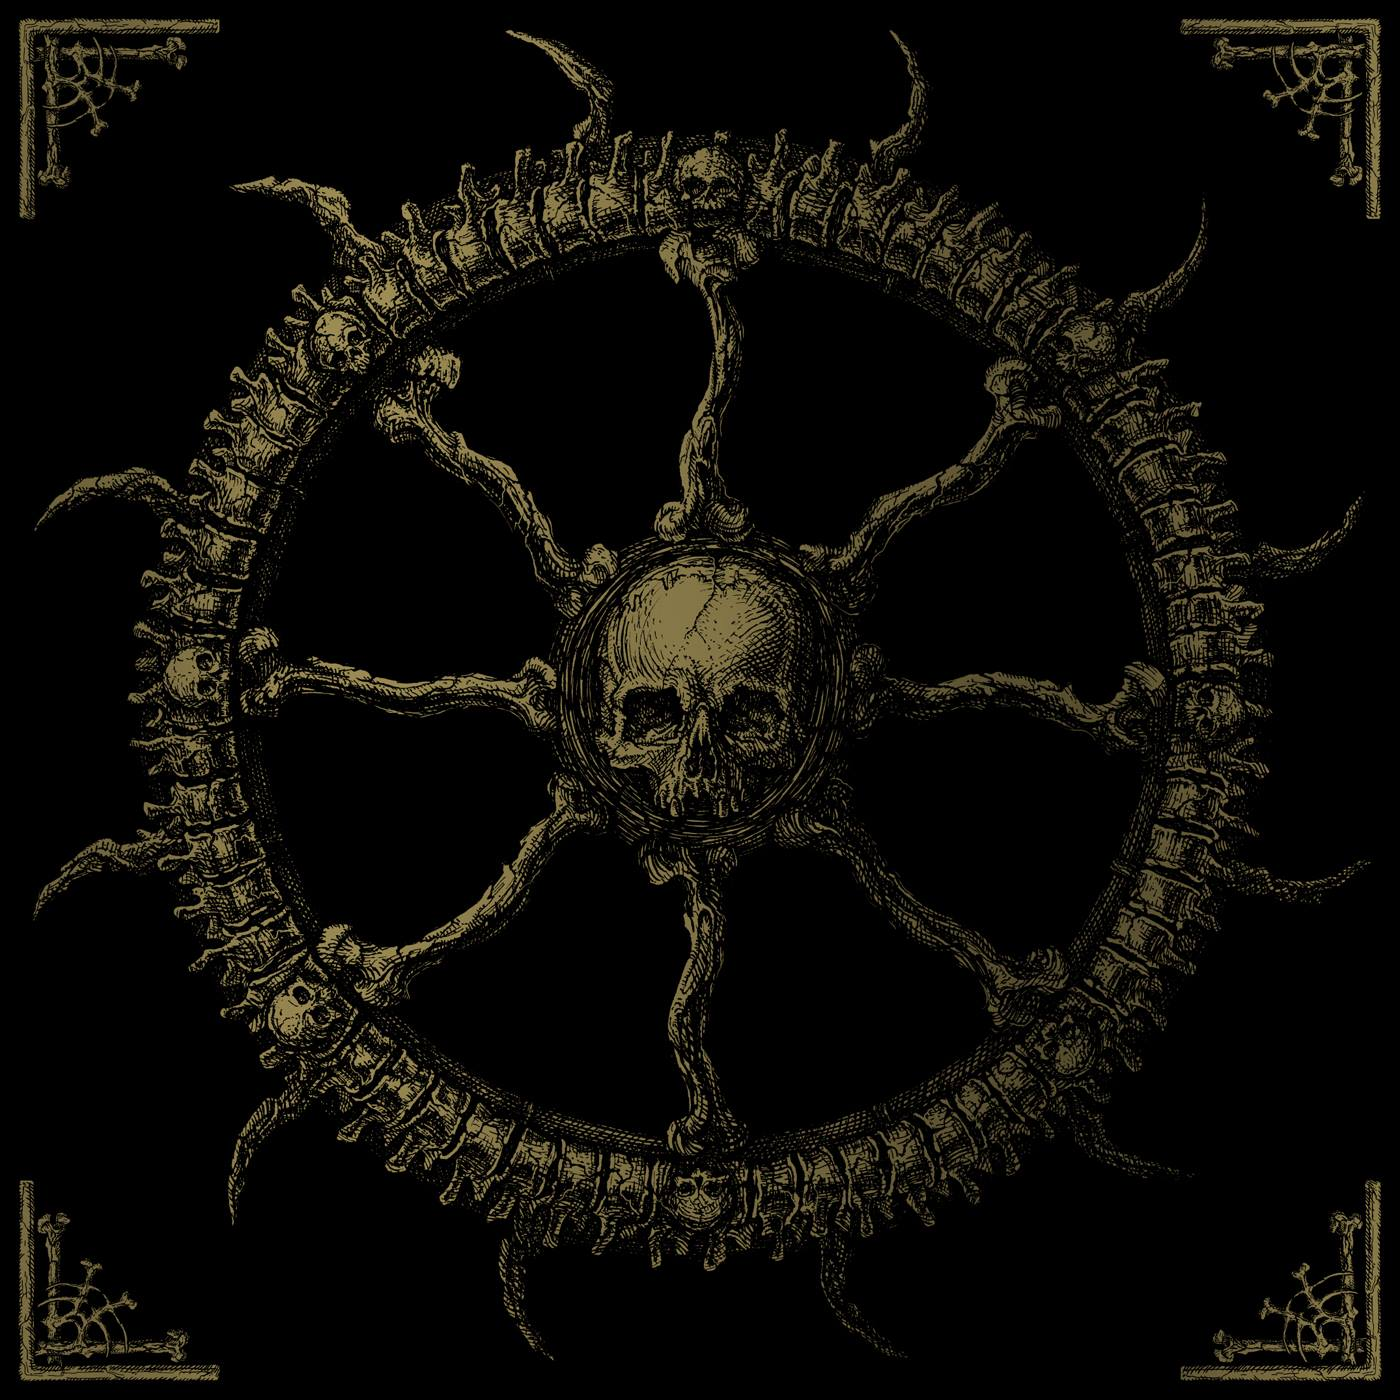 RITUAL DEATH - 13th MOON